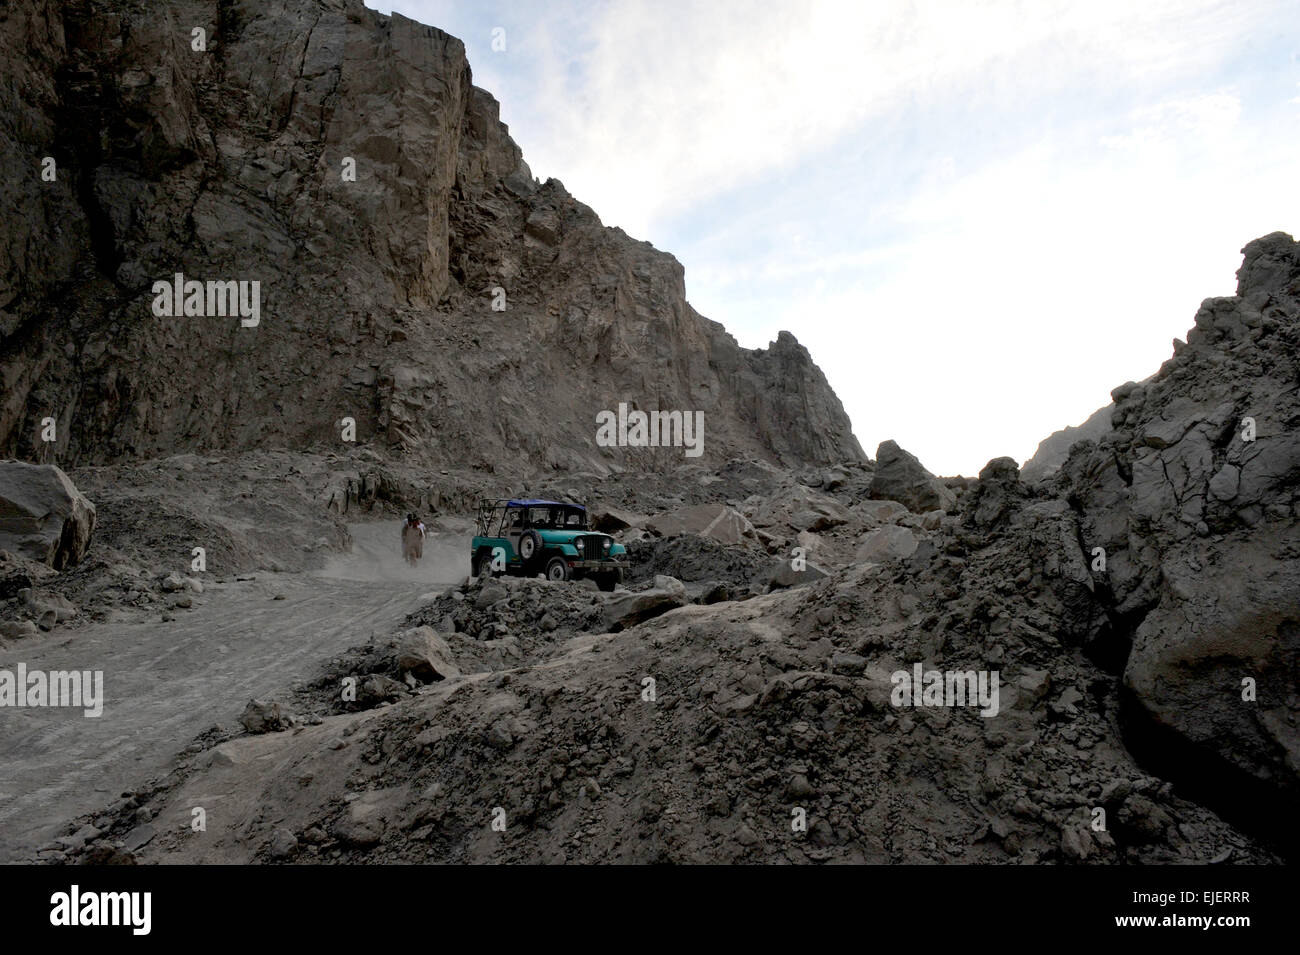 Attabad lake was formed due to a massive landslide at Attabad village in Gilgit-Baltistan, Hunza River, Pakistan, Stock Photo